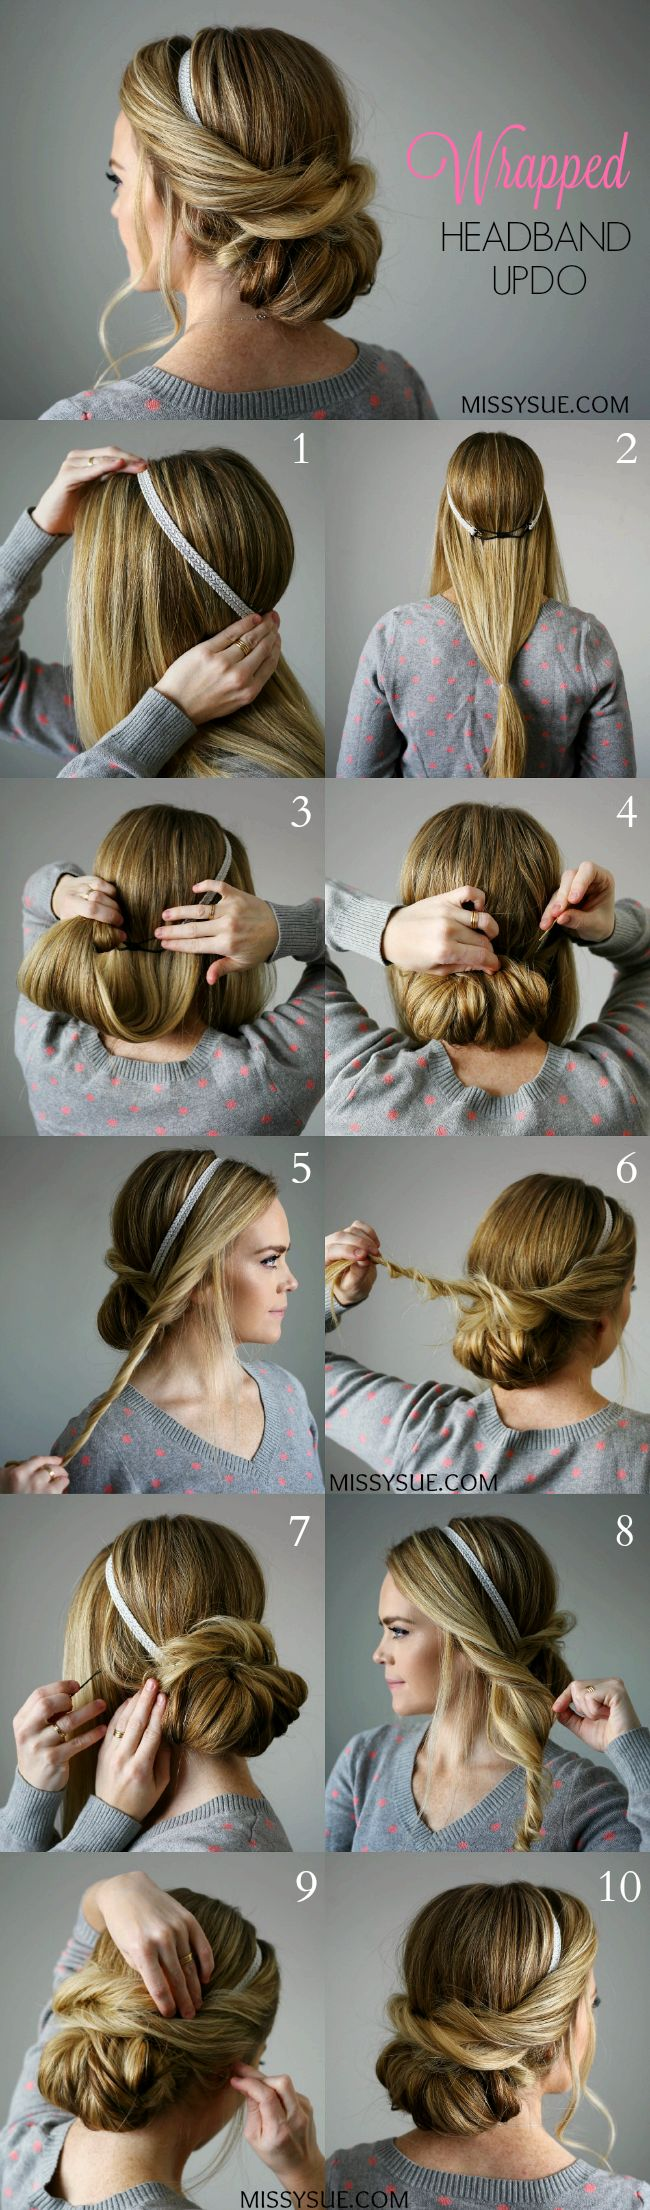 5 Step By Hair Tutorials To Do For Christmas